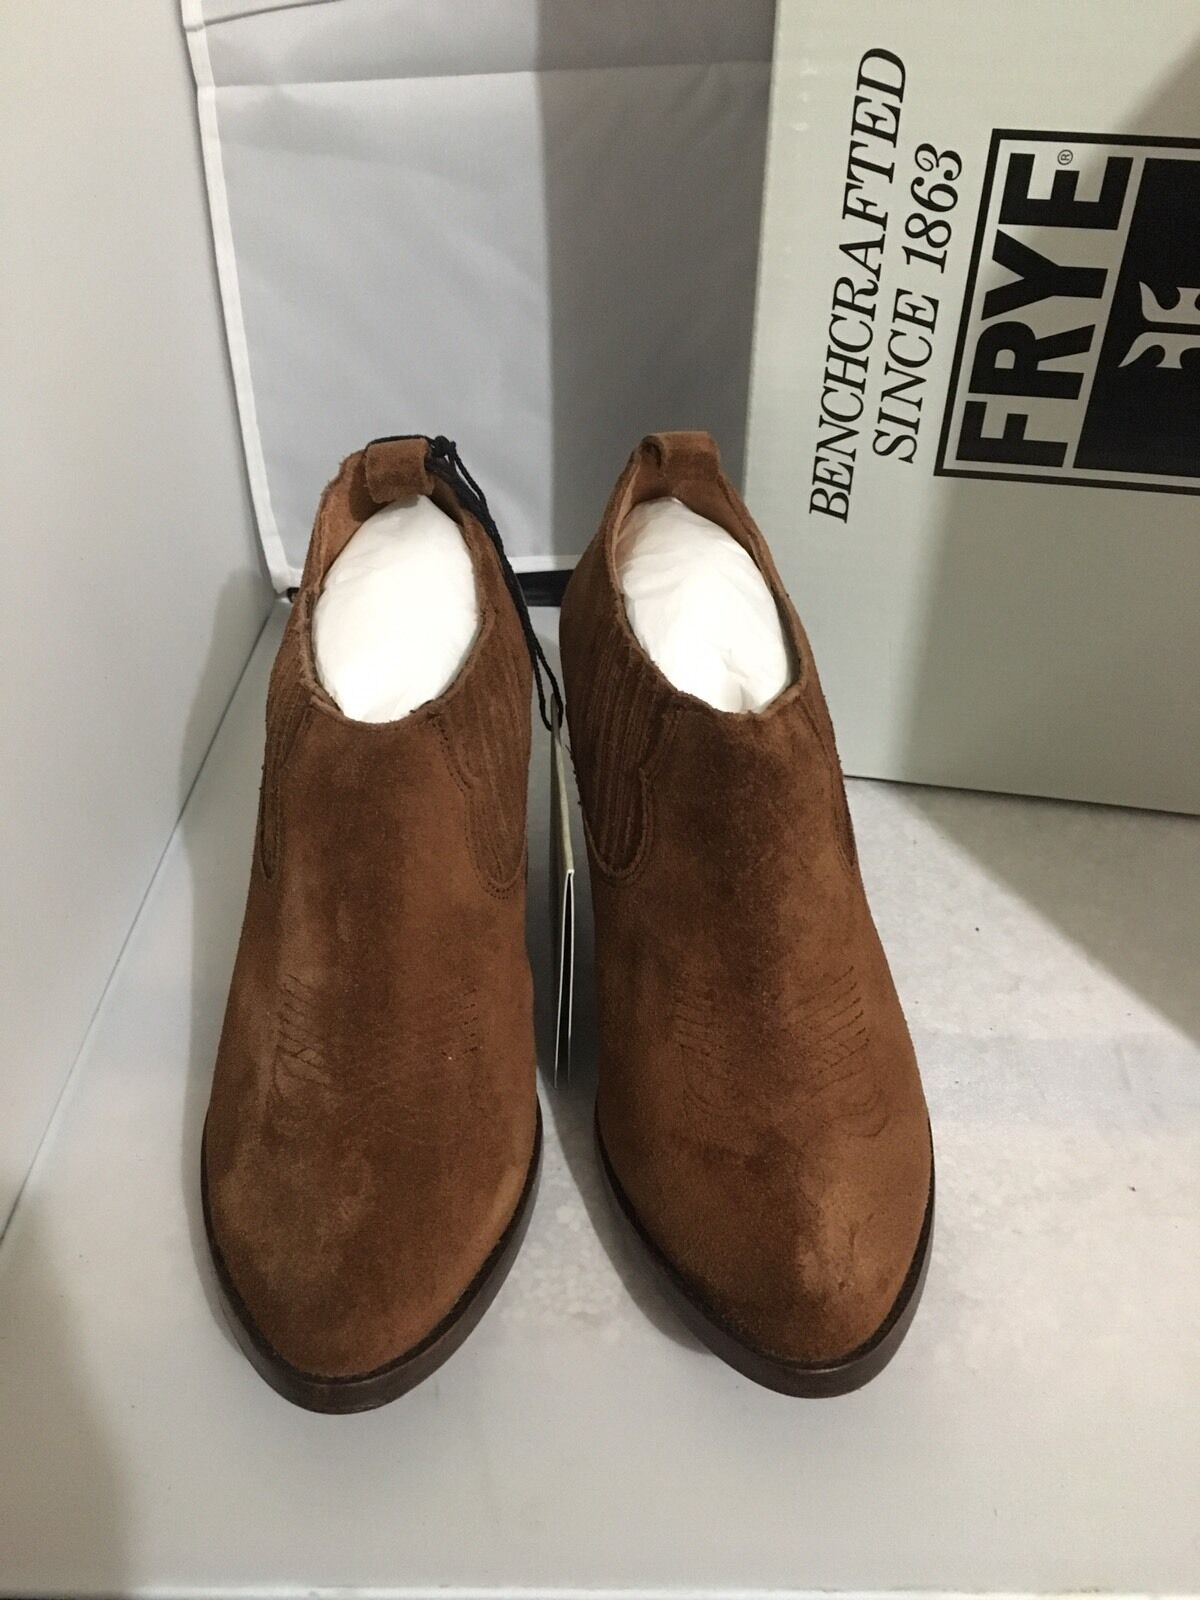 NIB FRYE ILANA Suede Western Slip On Bootie WOOD BROWN Sz 9.5 8